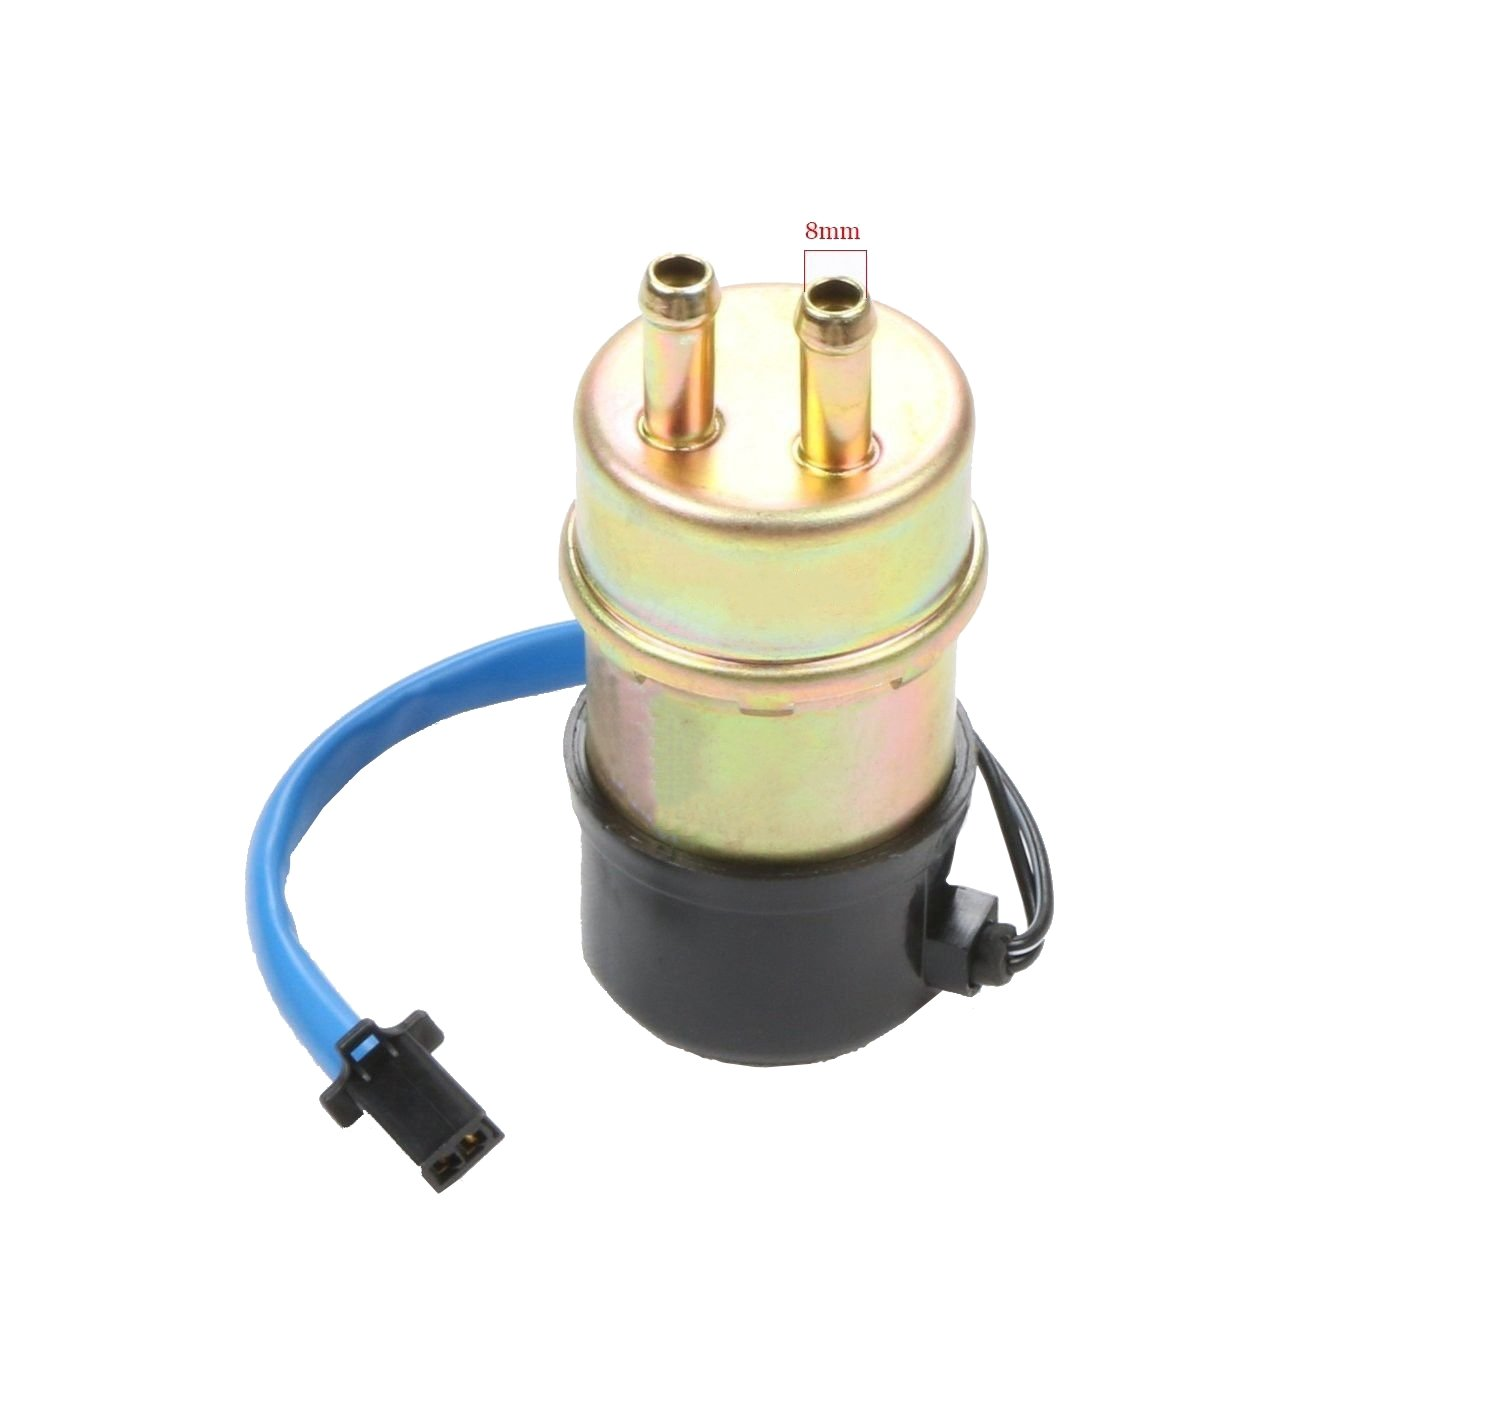 OSIAS Fuel Pump For Kawasaki 49040-1055 KF620 Mule 3000 3010 3020 2500 2510 2520 1000 by OSIAS